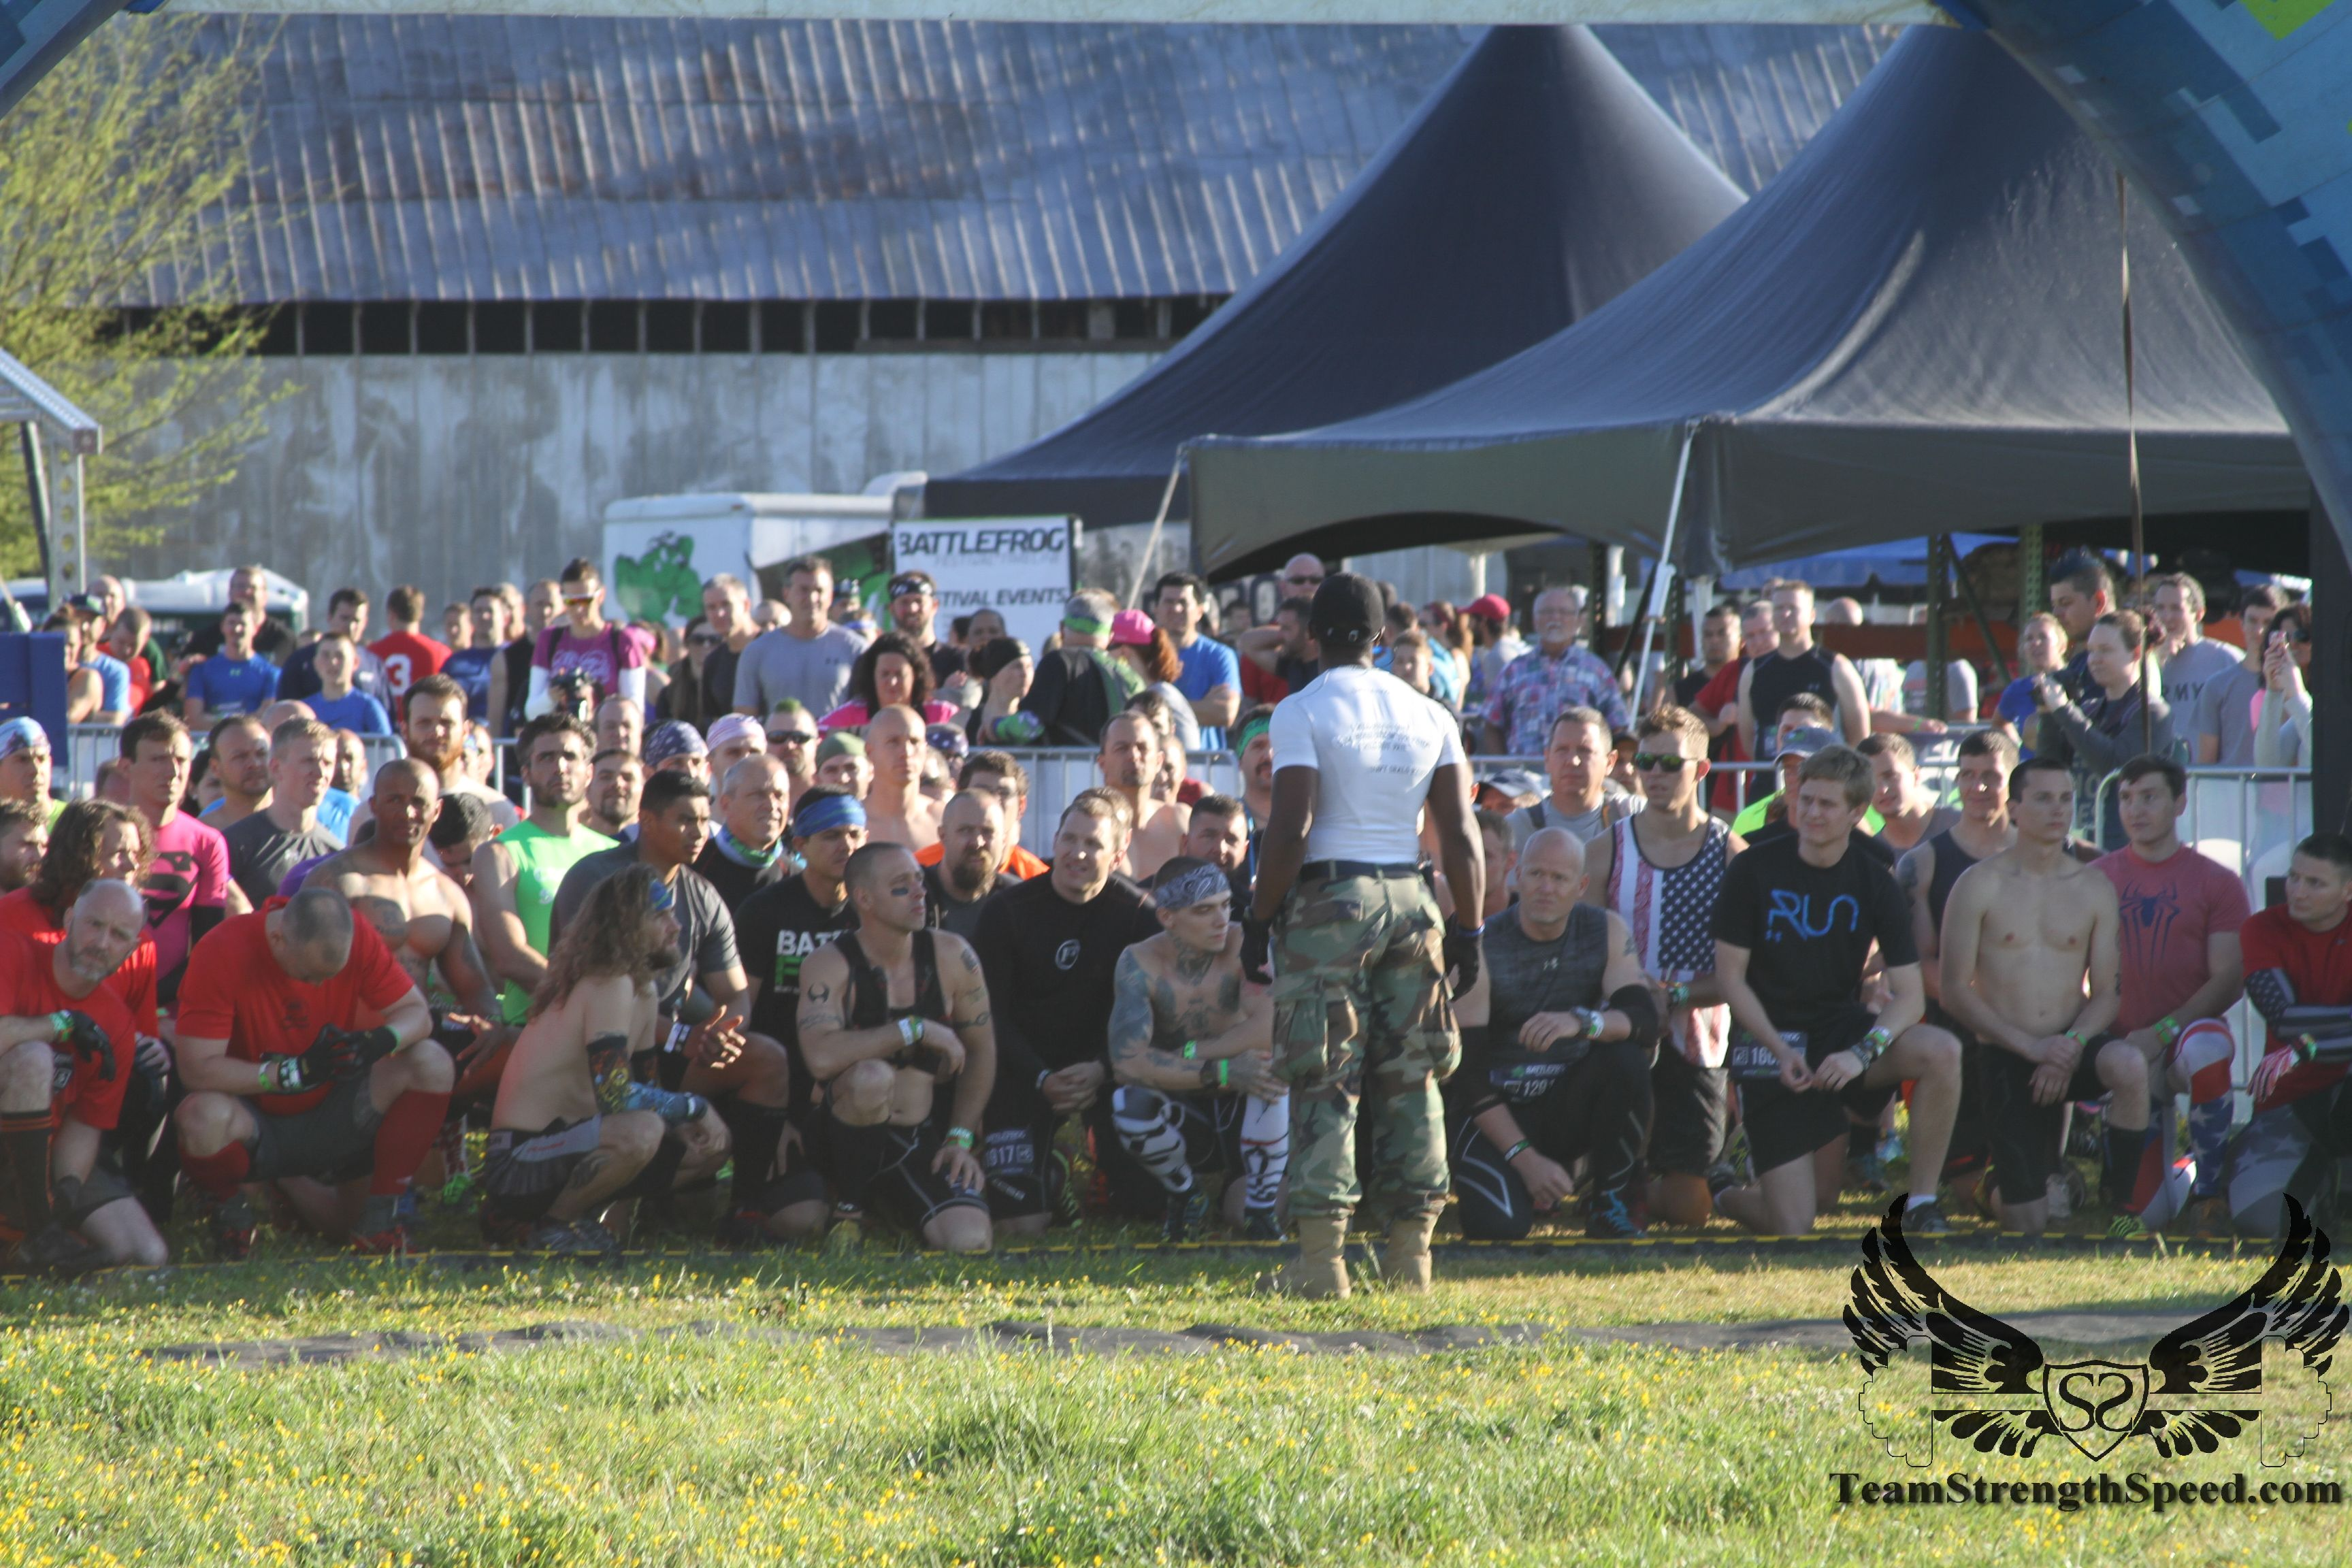 Coach Pain Dewayne giving one of his signature motivational speeches before the start of BFX.